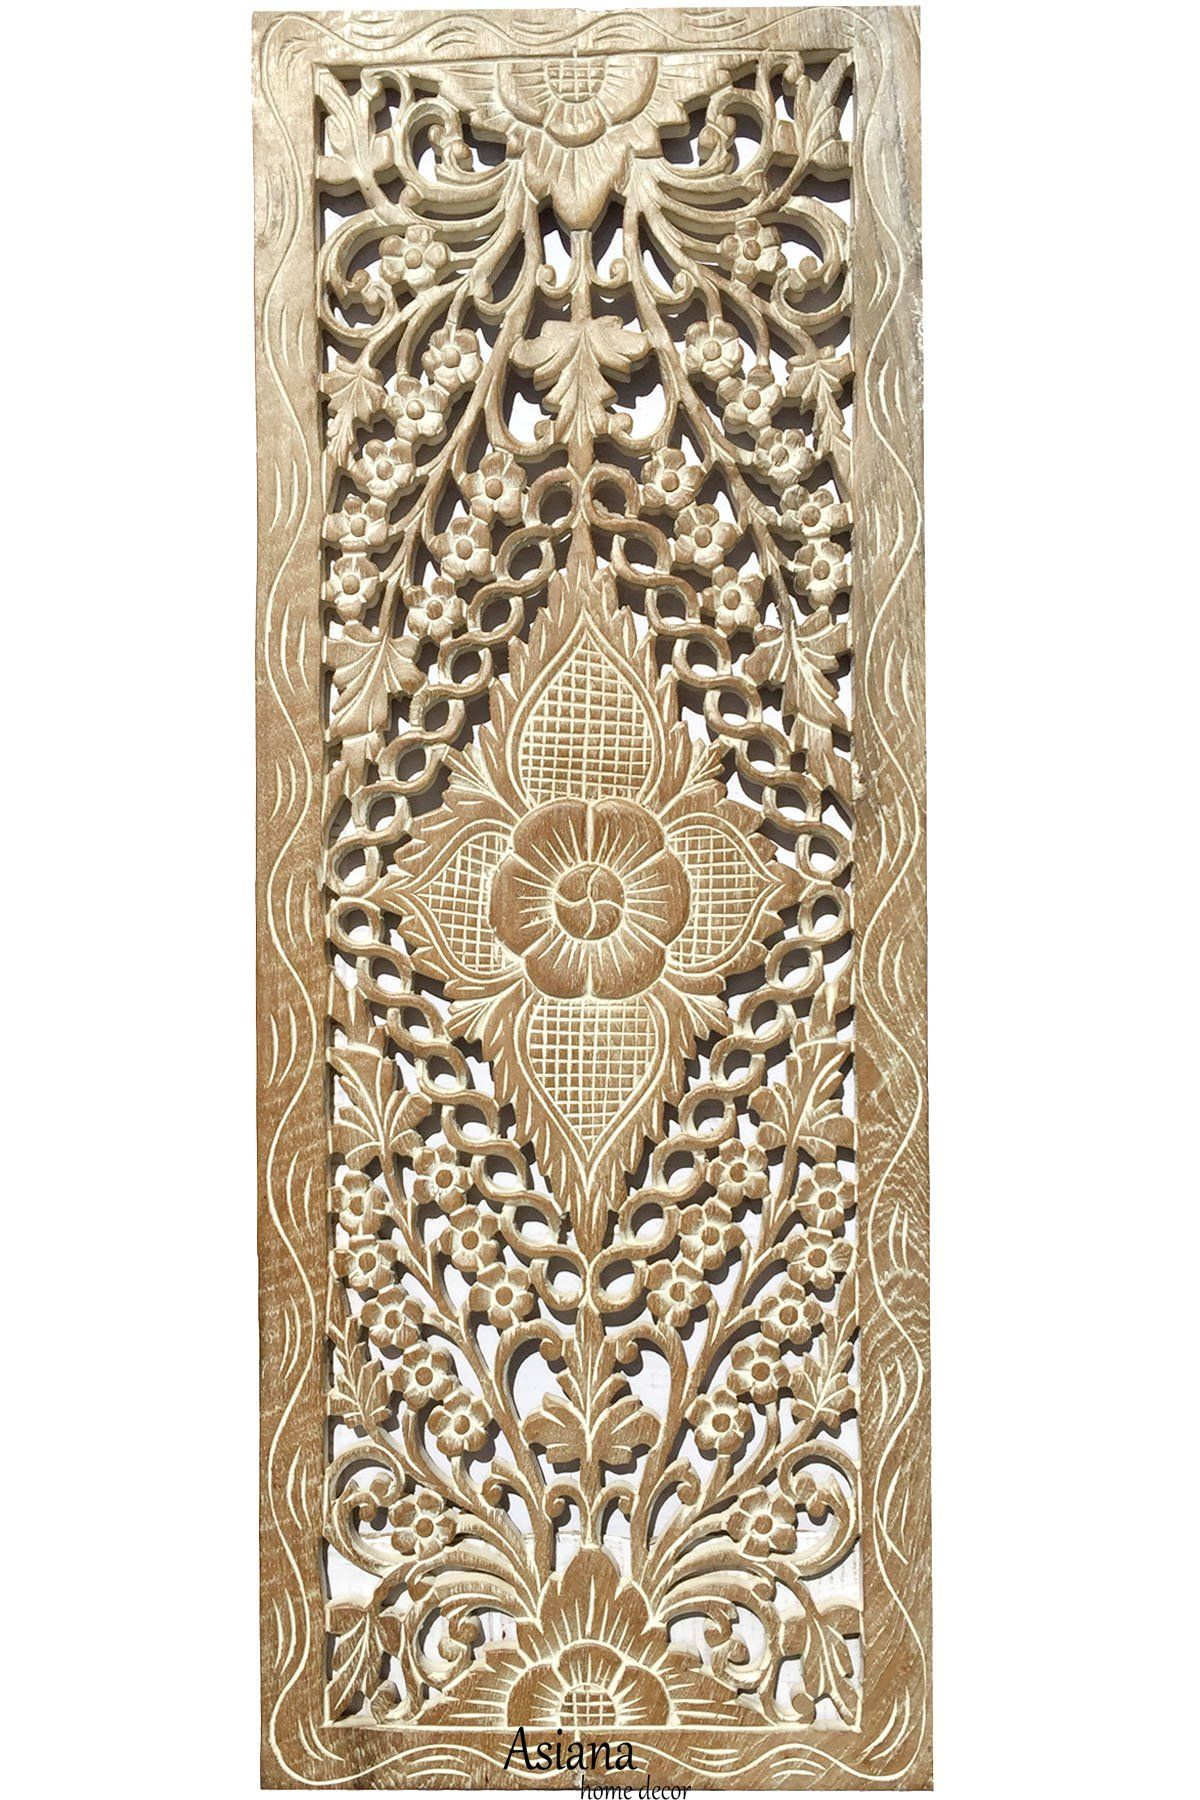 Floral Wood Carved Wall Panel Wall Hanging Decorative Contemporary Wall Panel 35 5 X13 5 X0 5 Color Option Available Carved Wood Wall Art Wall Paneling Carved Wood Plaque